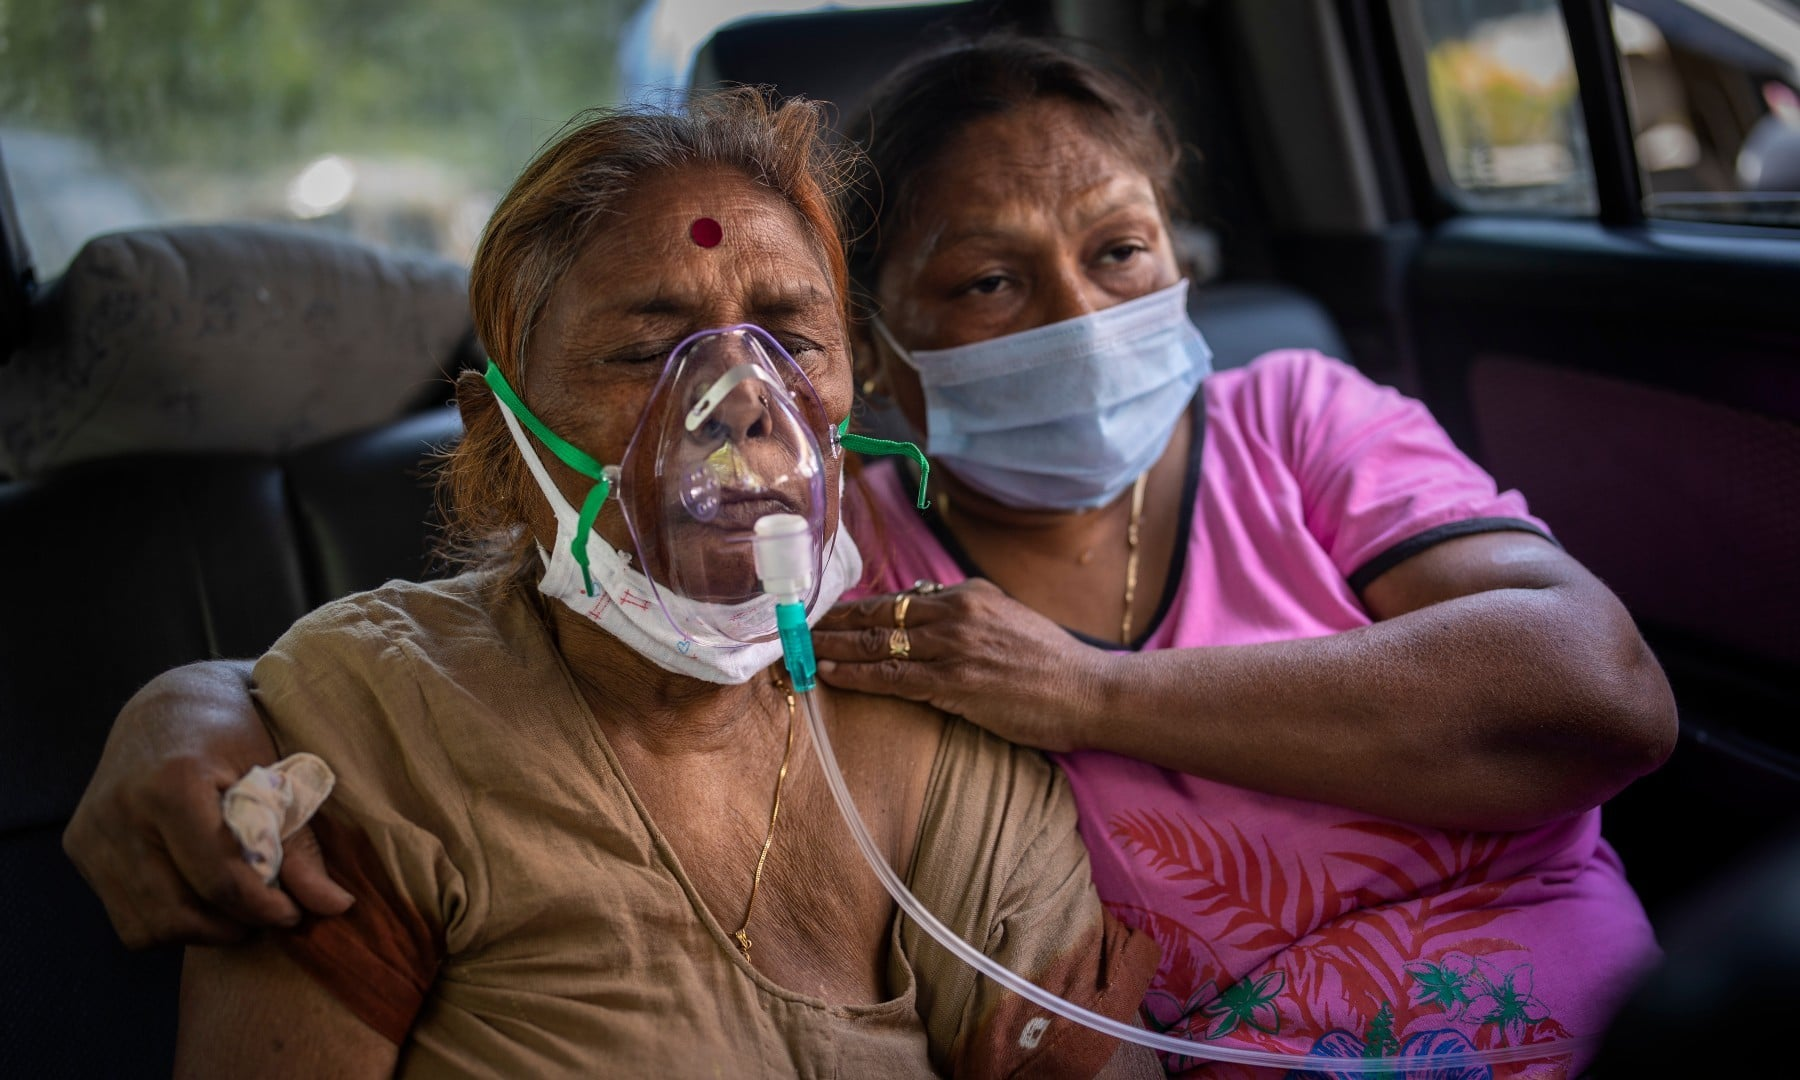 A Covid-19 patient receives oxygen inside a car provided by a Gurdwara, a Sikh house of worship, in New Delhi on April 24. — AP